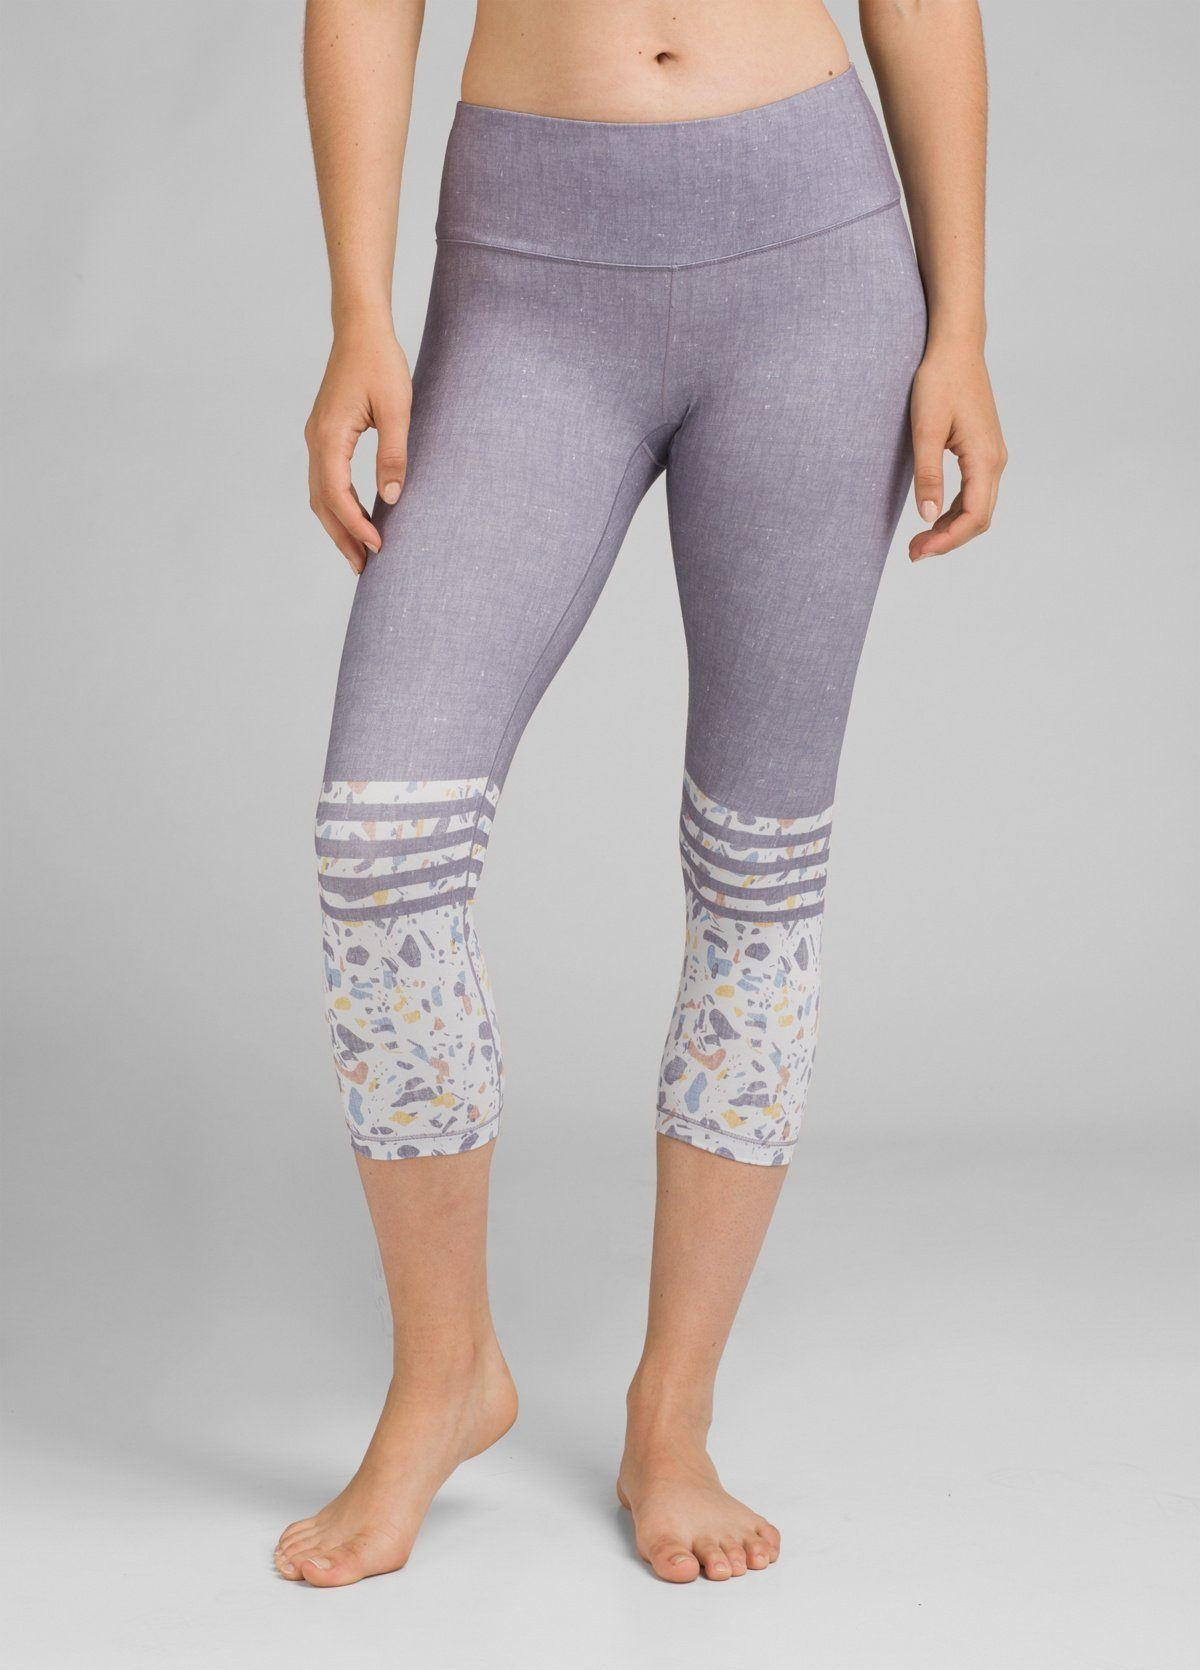 PrAna - W's Pillar Printed Capri - Recycled Polyester - Weekendbee - sustainable sportswear